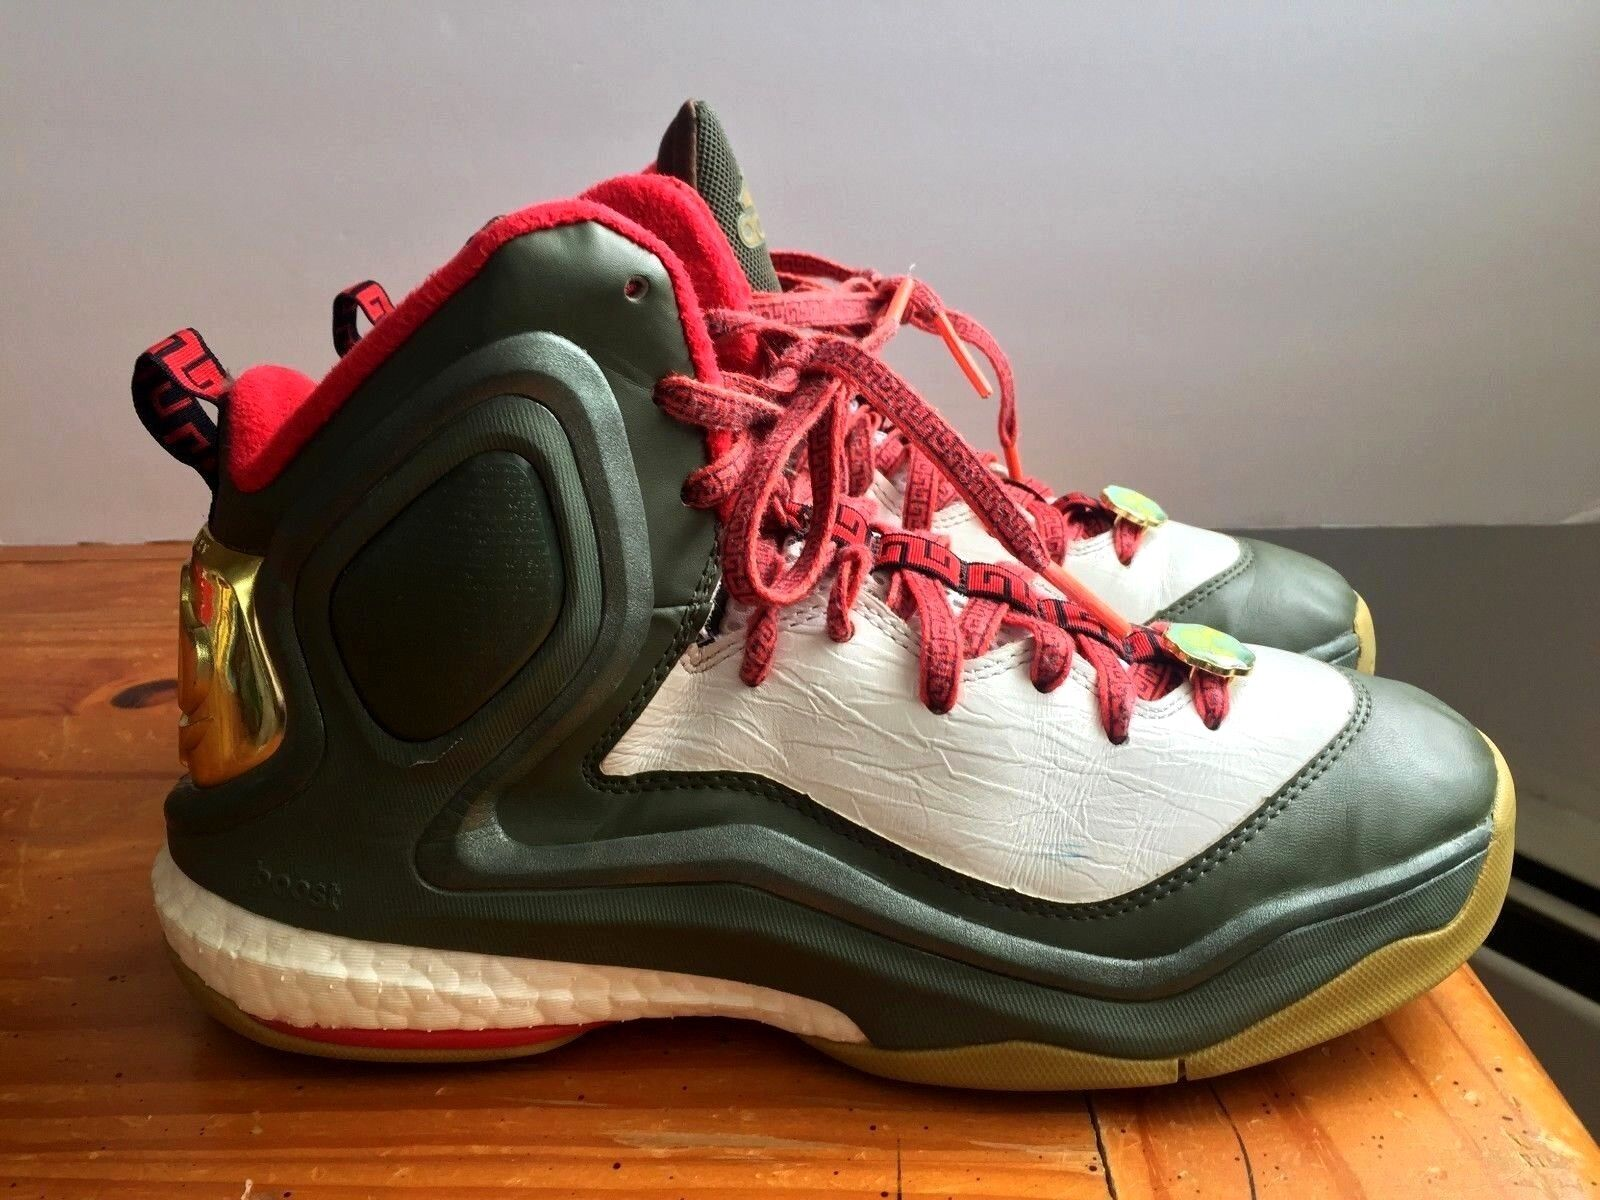 Adidas Derrick Rose 5 Boost Basketball Shoes Year of the Goat Comfortable Comfortable and good-looking